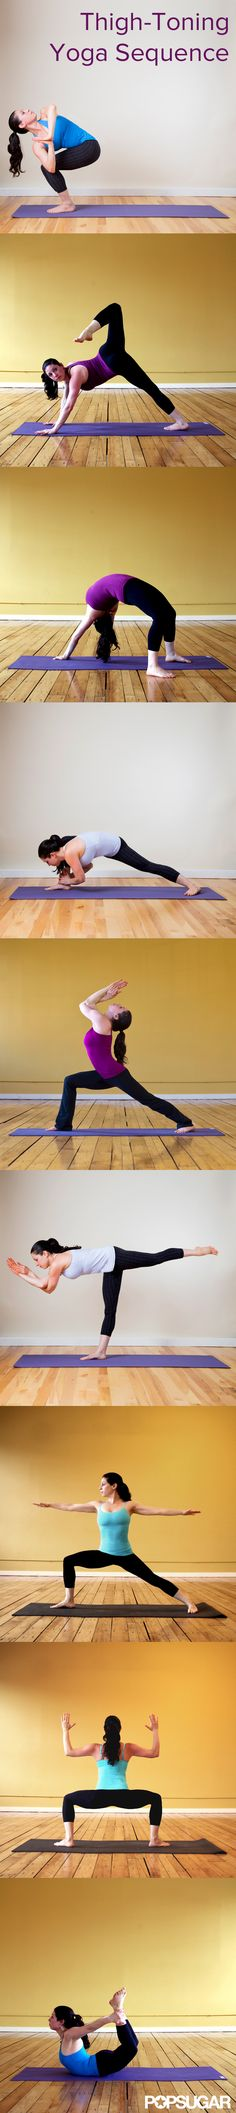 Thigh-Toning Yoga Poses